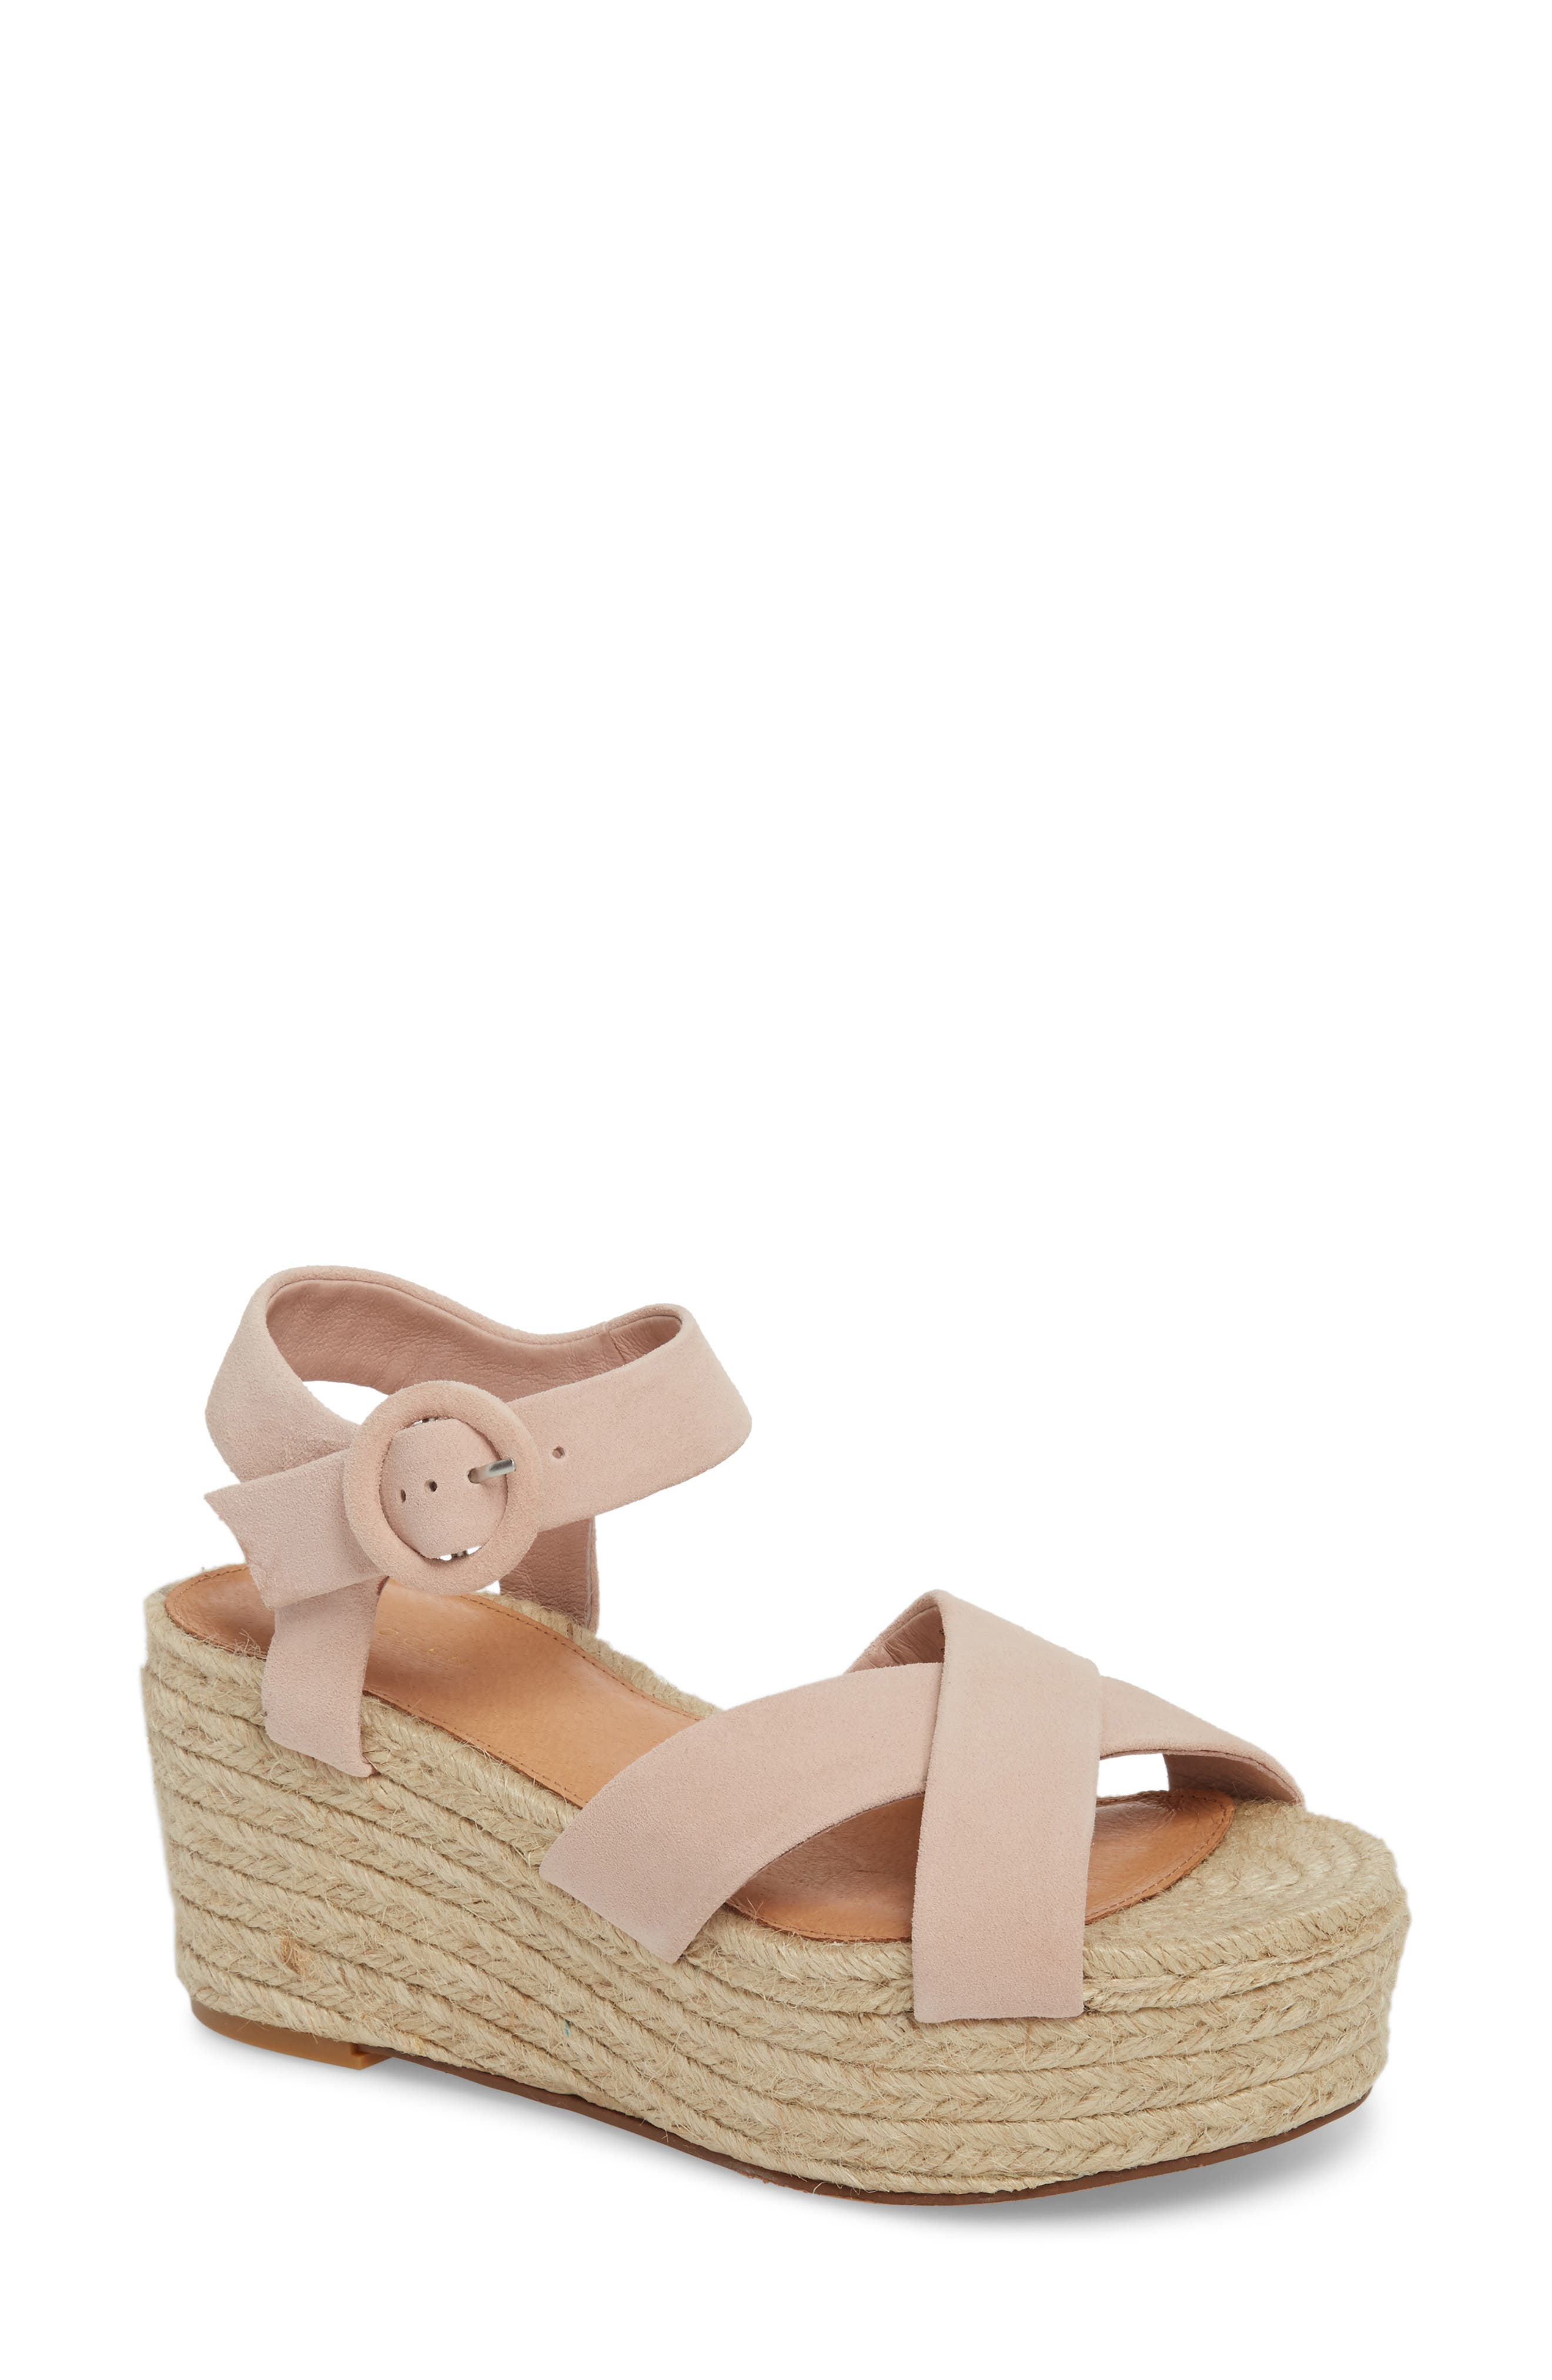 Sale Easy Street Gold Sandals Women's Wedge Havana Wedge Sandal Cork At Canada on sale